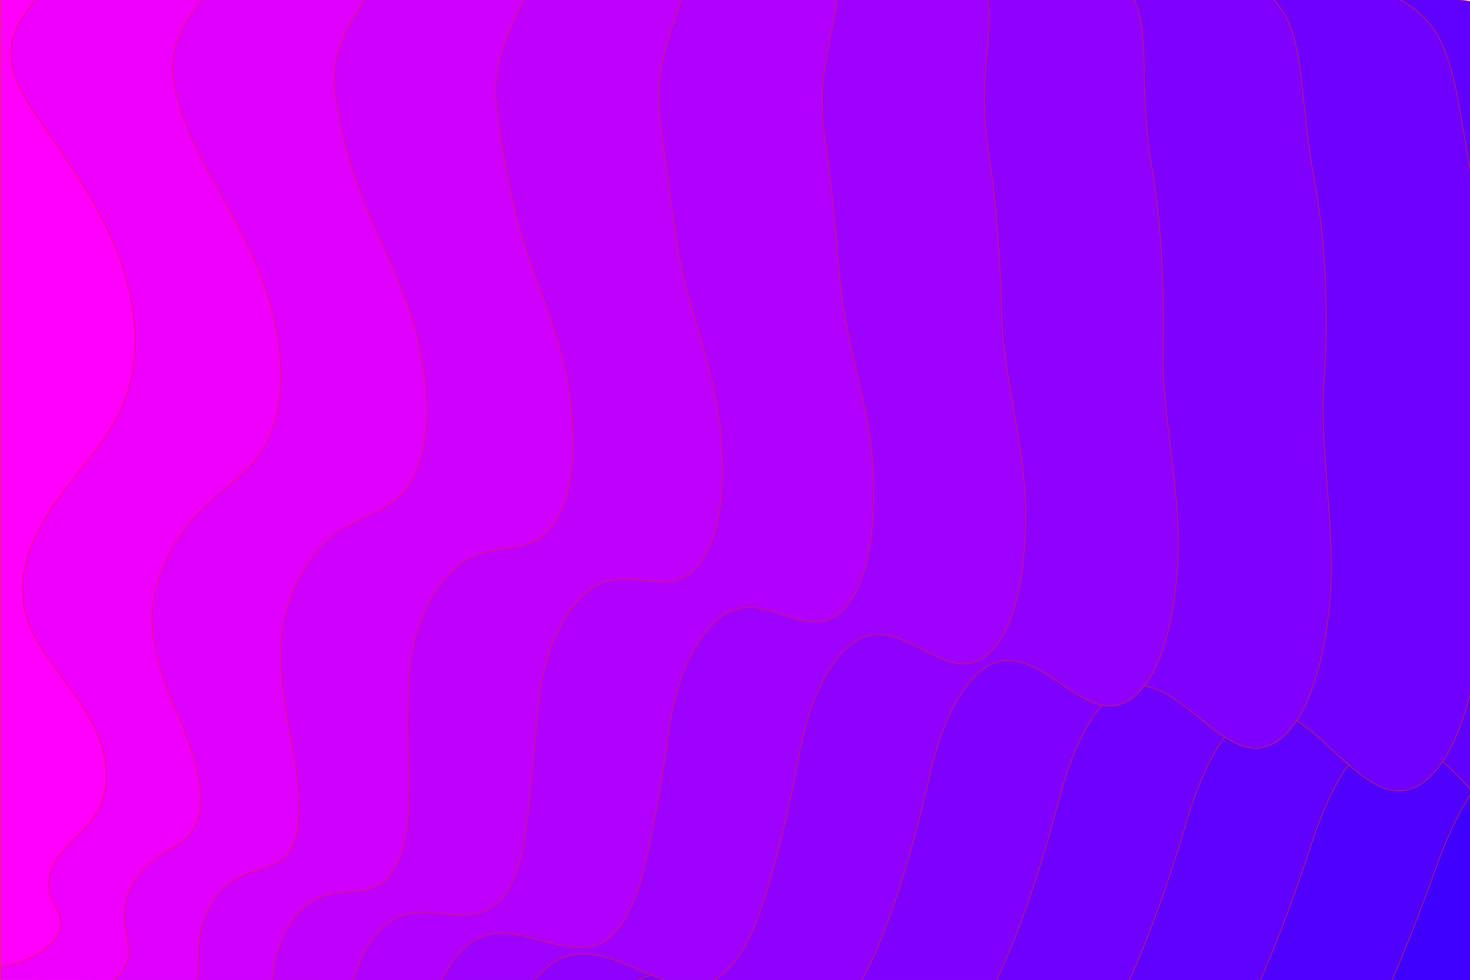 Abstract pattern wave background vector